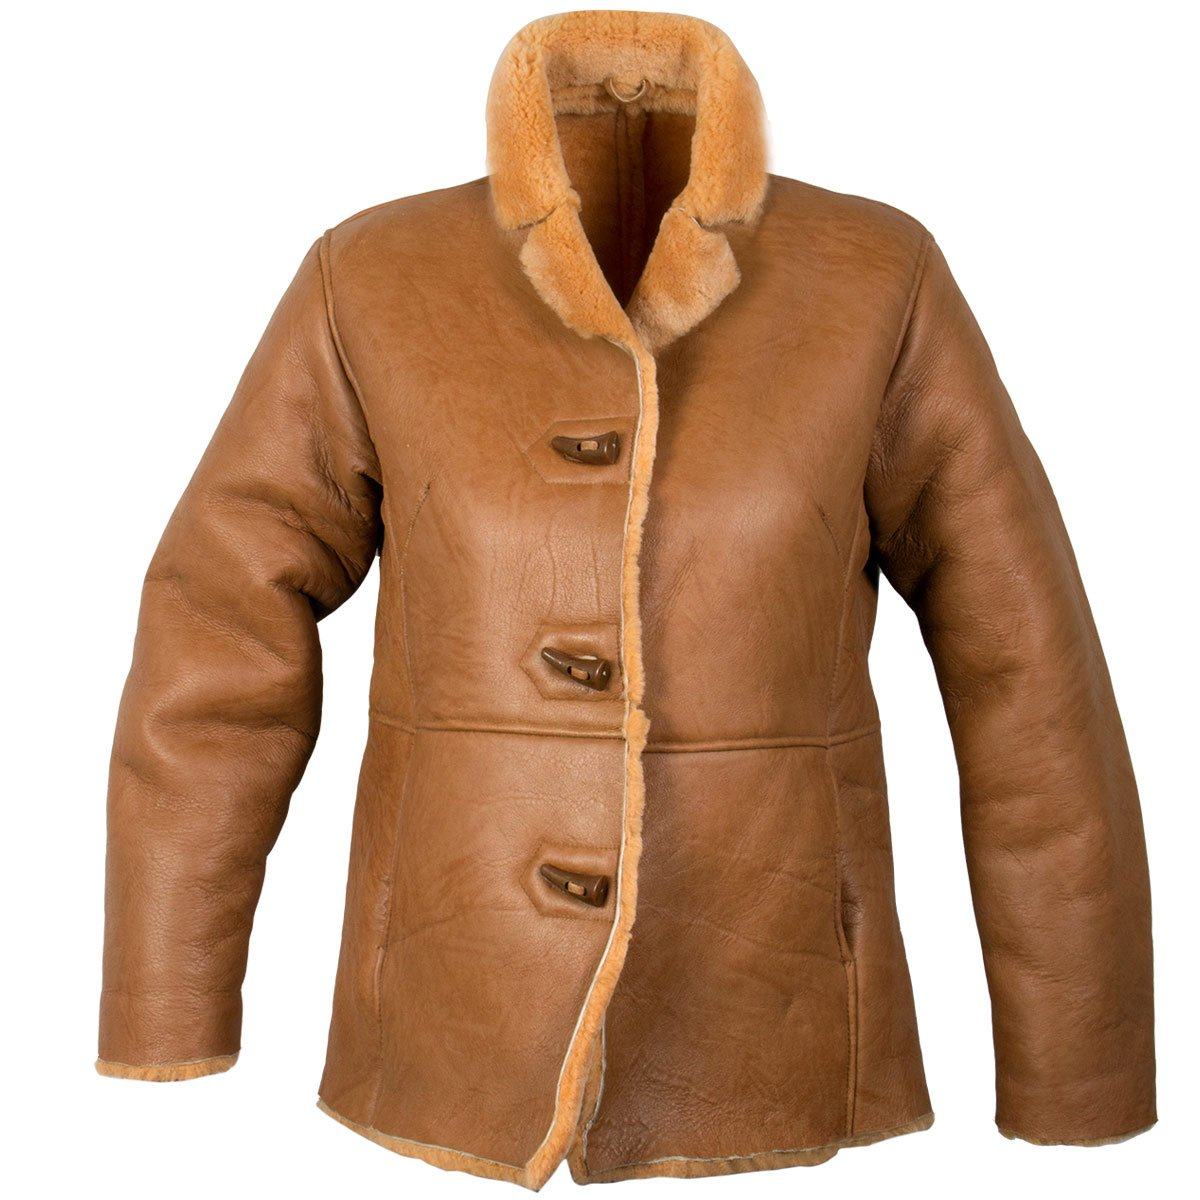 Ladies Lucky Leather 0021S Rusty Brown Color Short Shearling Coat - Large by Lucky Leather